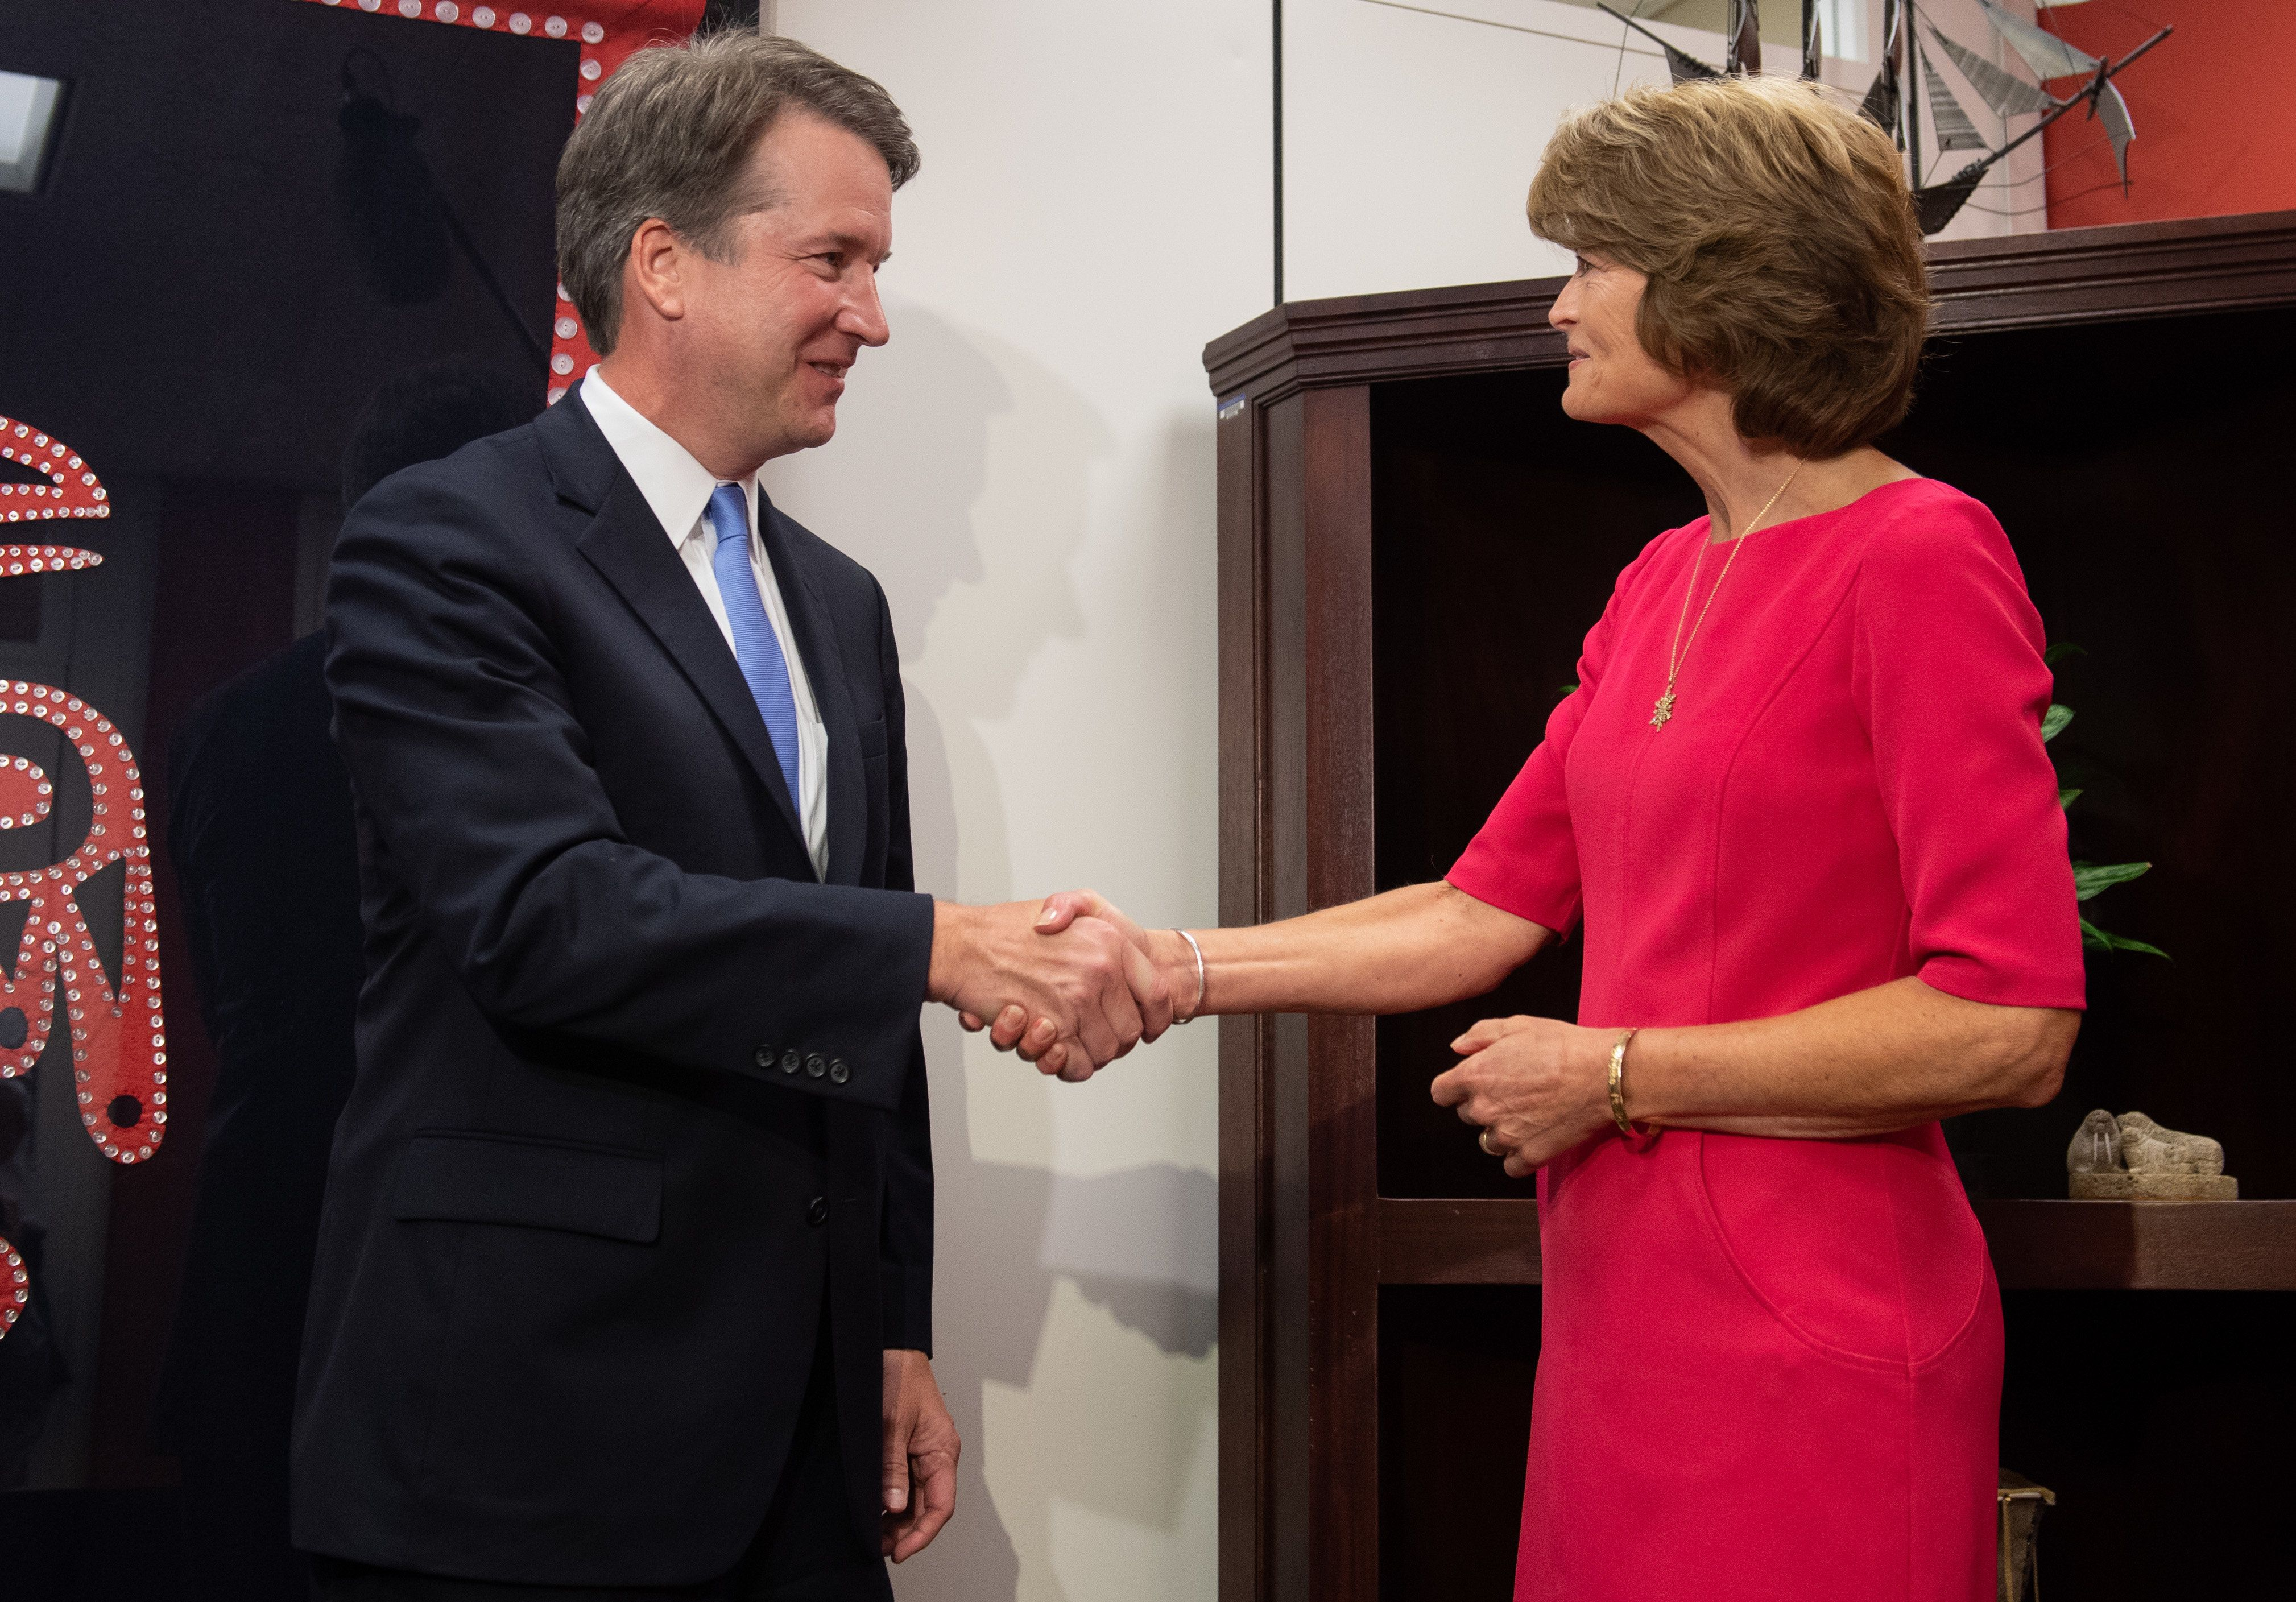 Supreme Court nominee Brett Kavanaugh and Sen. Lisa Murkowski (R-Alaska) meet on Aug. 23 on Capitol Hill.